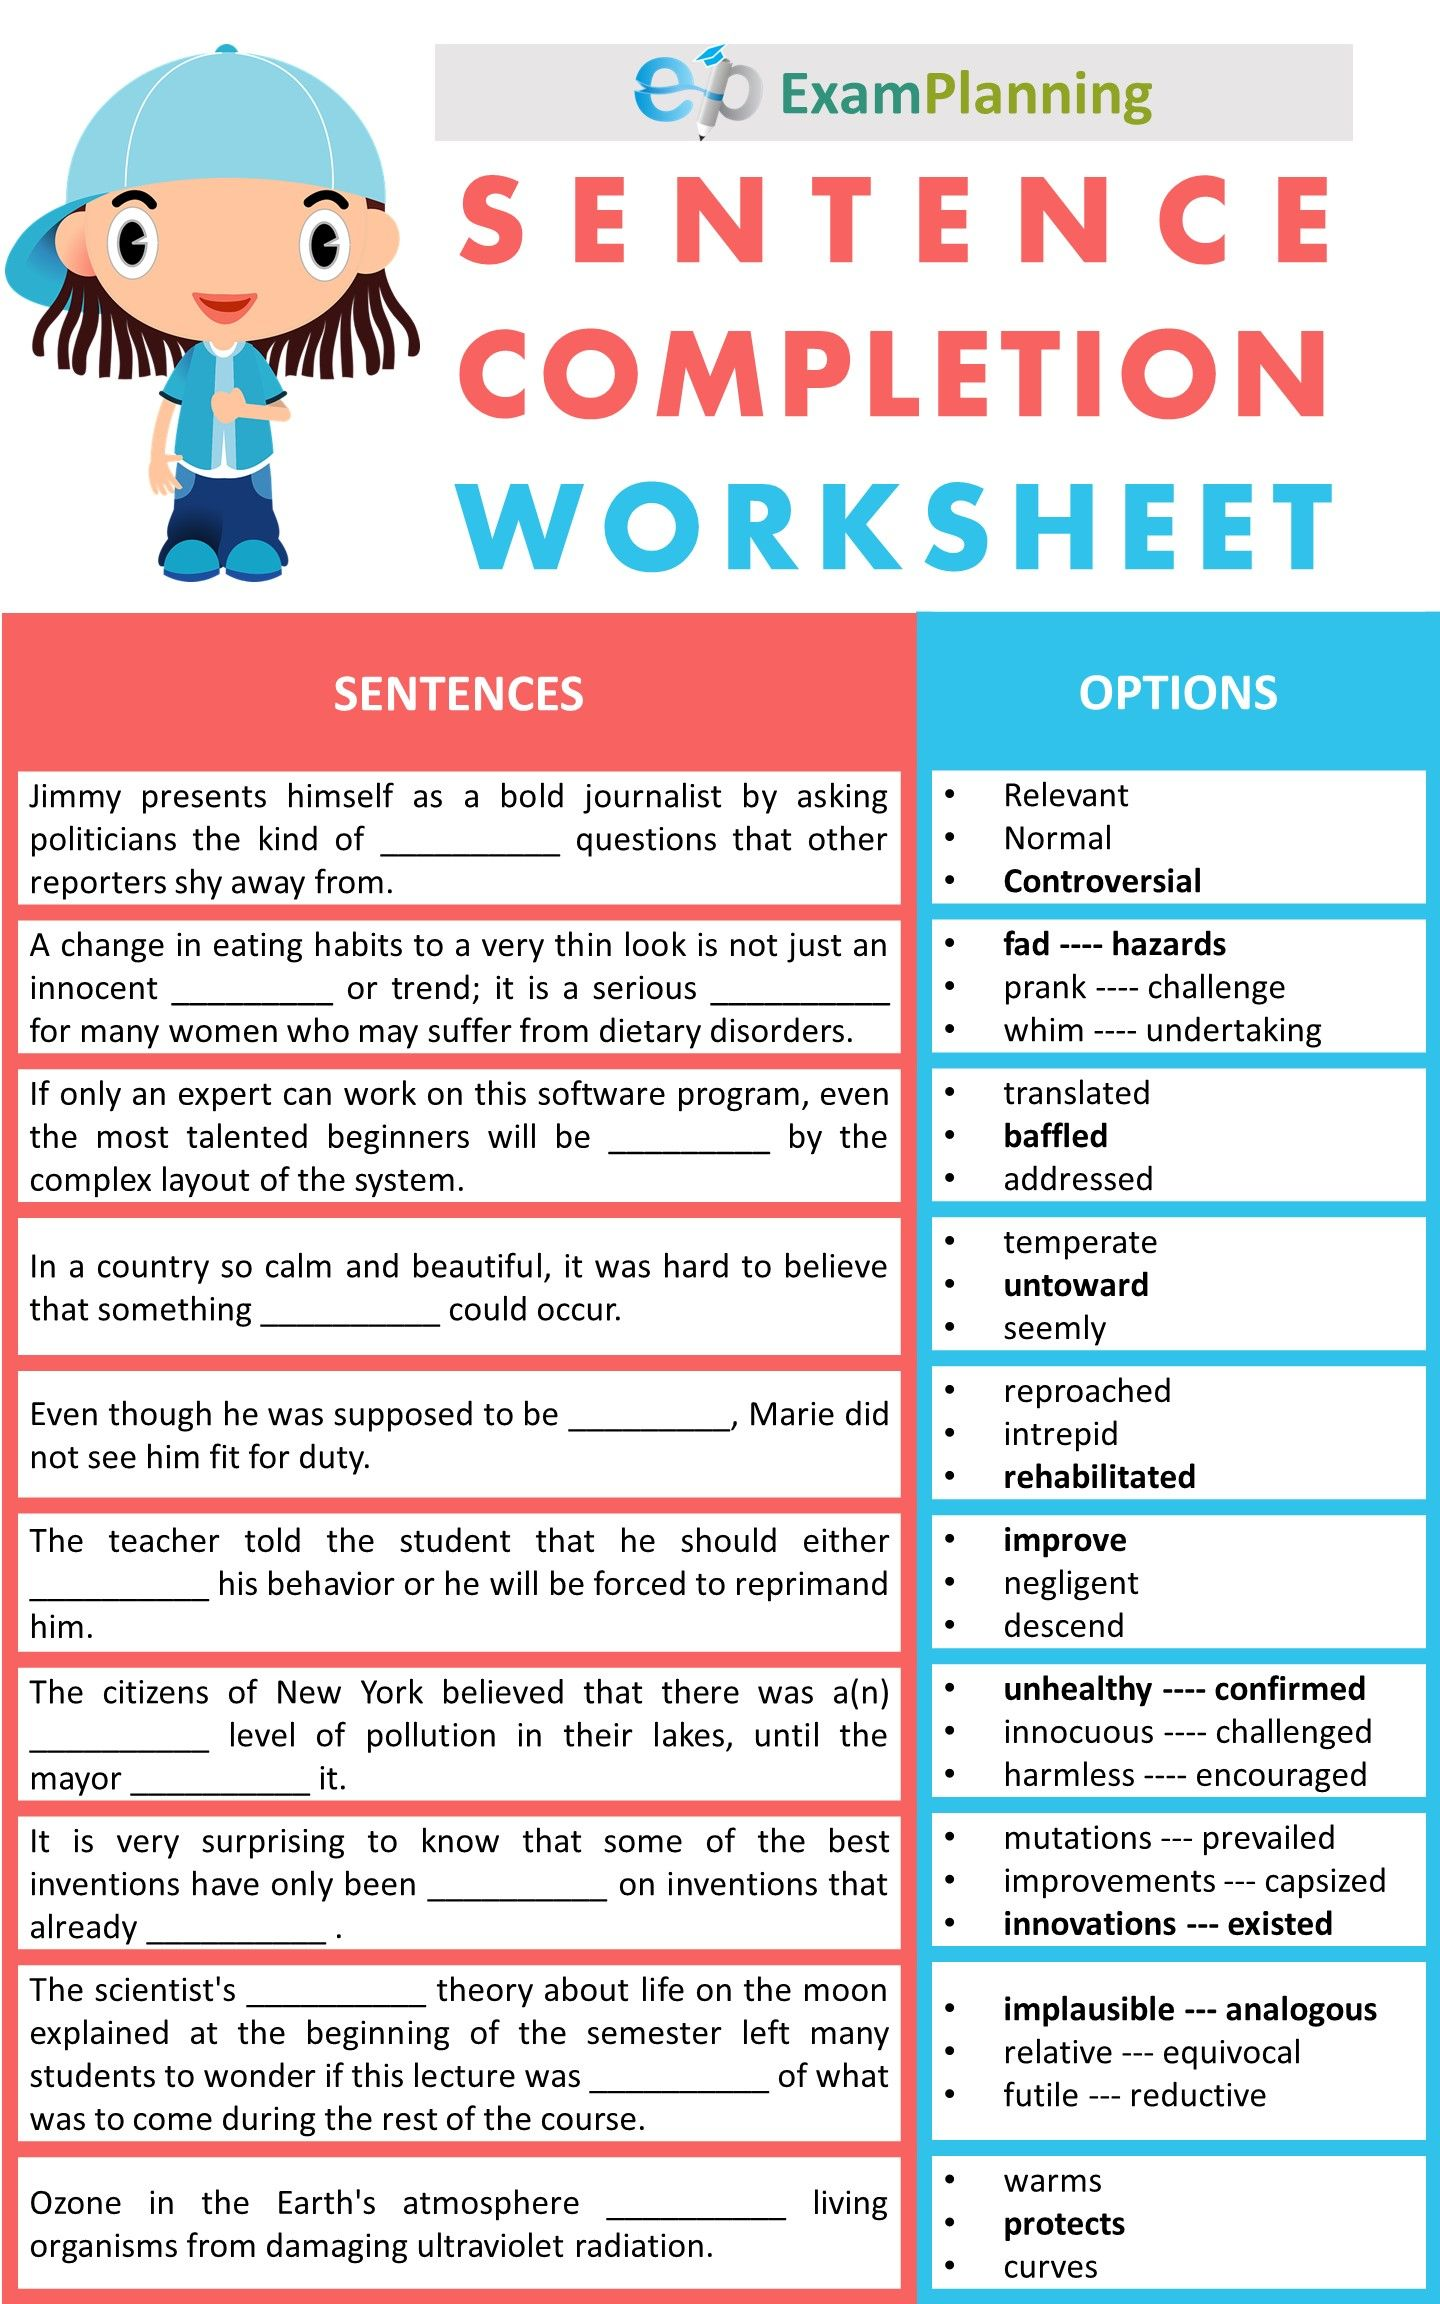 Sentence Completion Worksheets Sentences Learn English Words English Grammar Exercises [ 2304 x 1440 Pixel ]